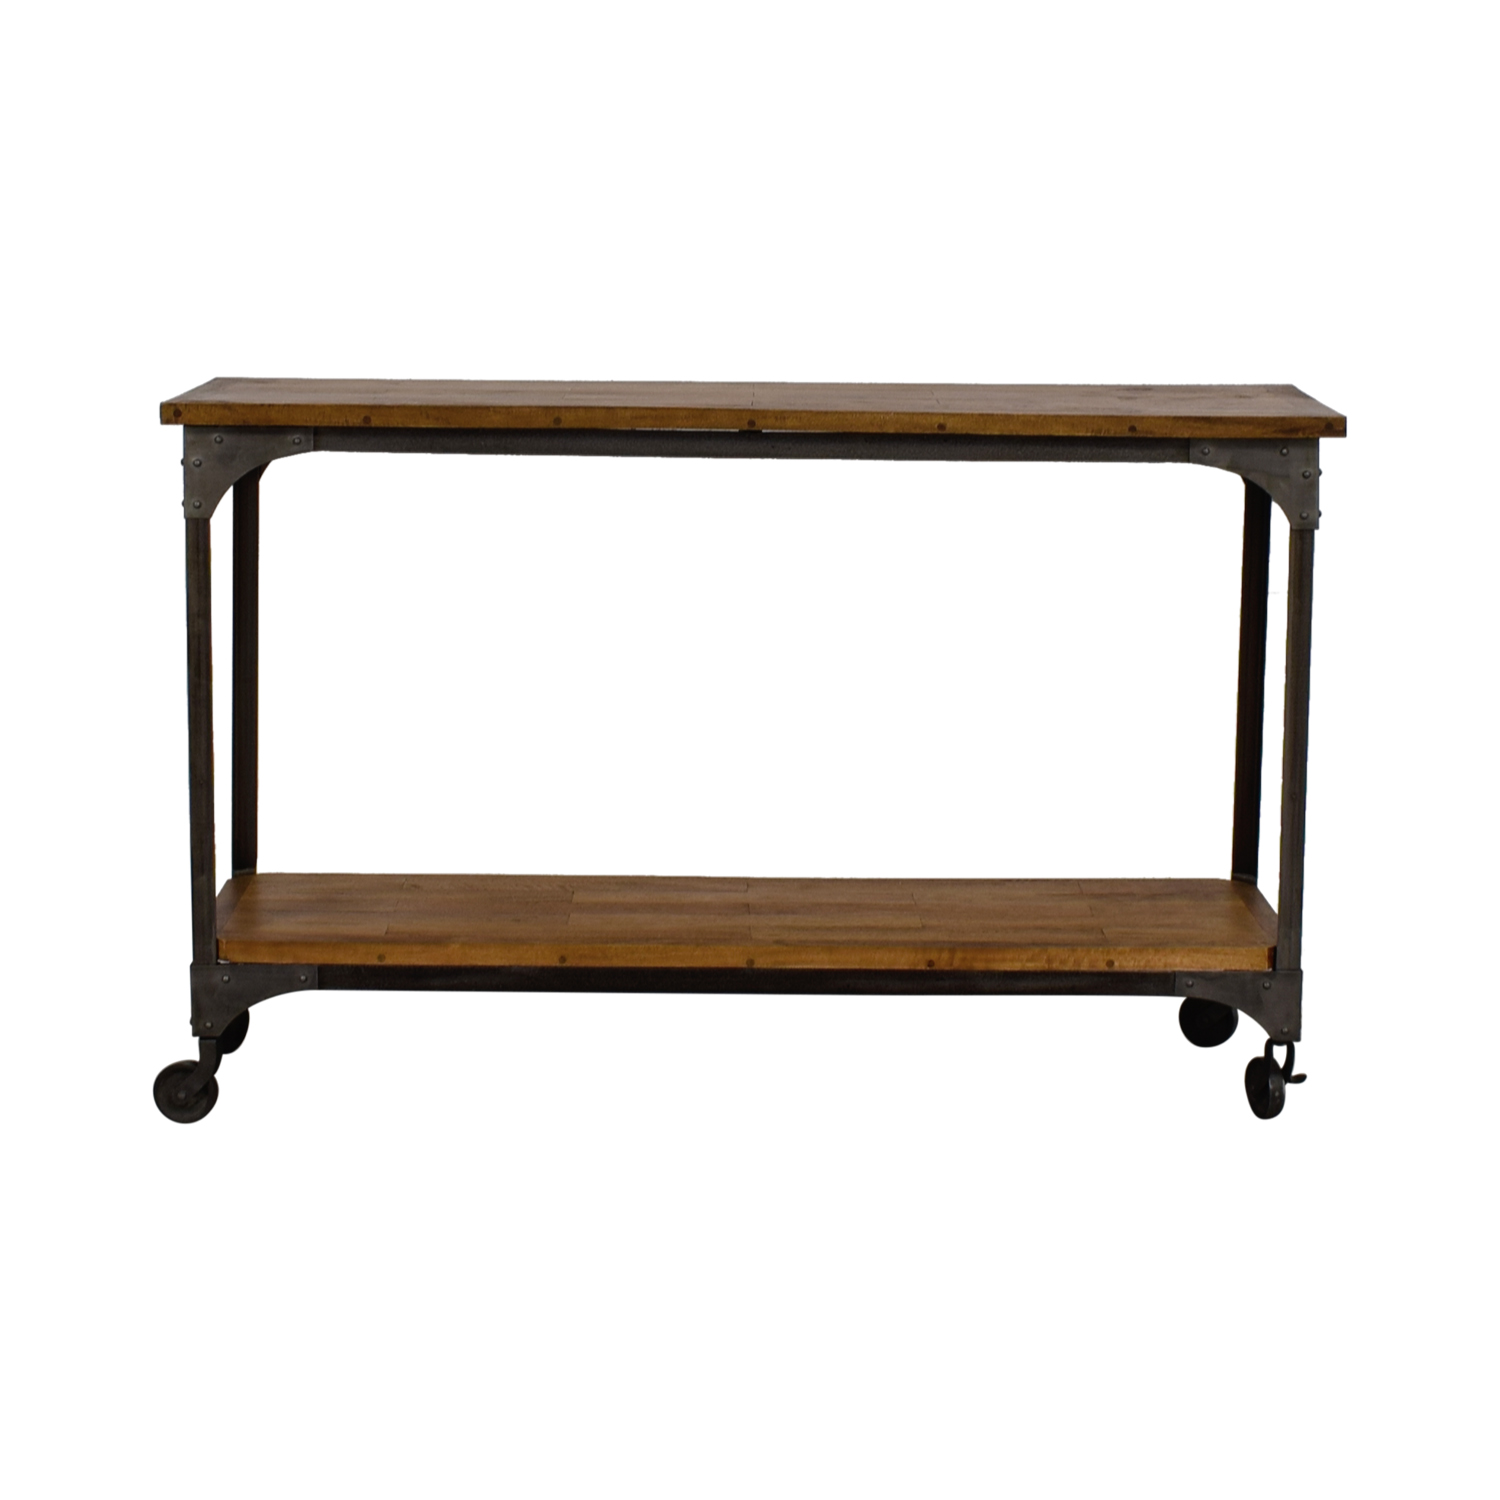 off world market aiden wood and metal console table accent tables black legs decorative outdoor side edison bulb lamp real marble gold coffee country decorating ideas rustic